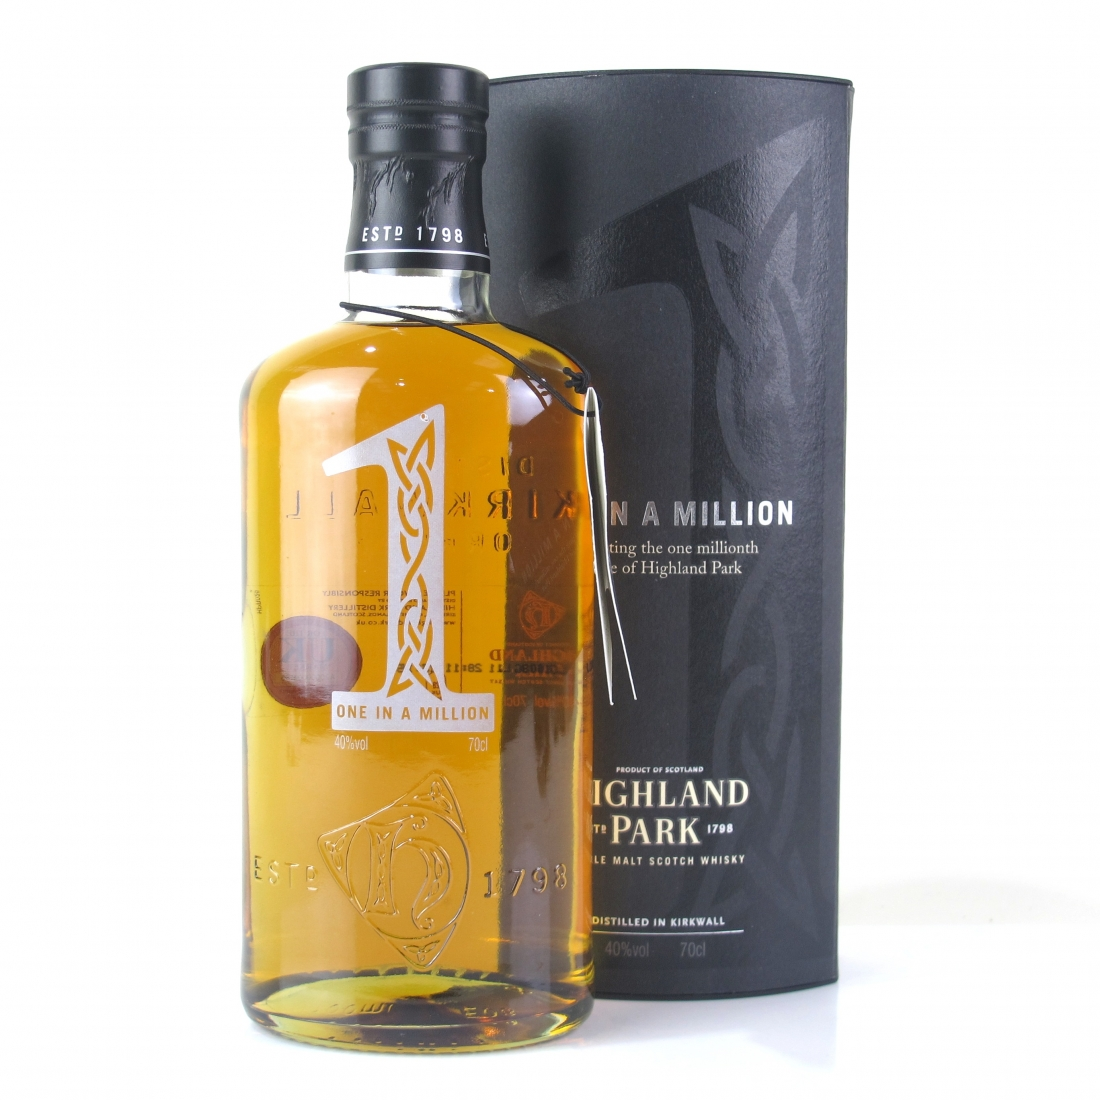 Highland Park One in a Million 12 Year Old